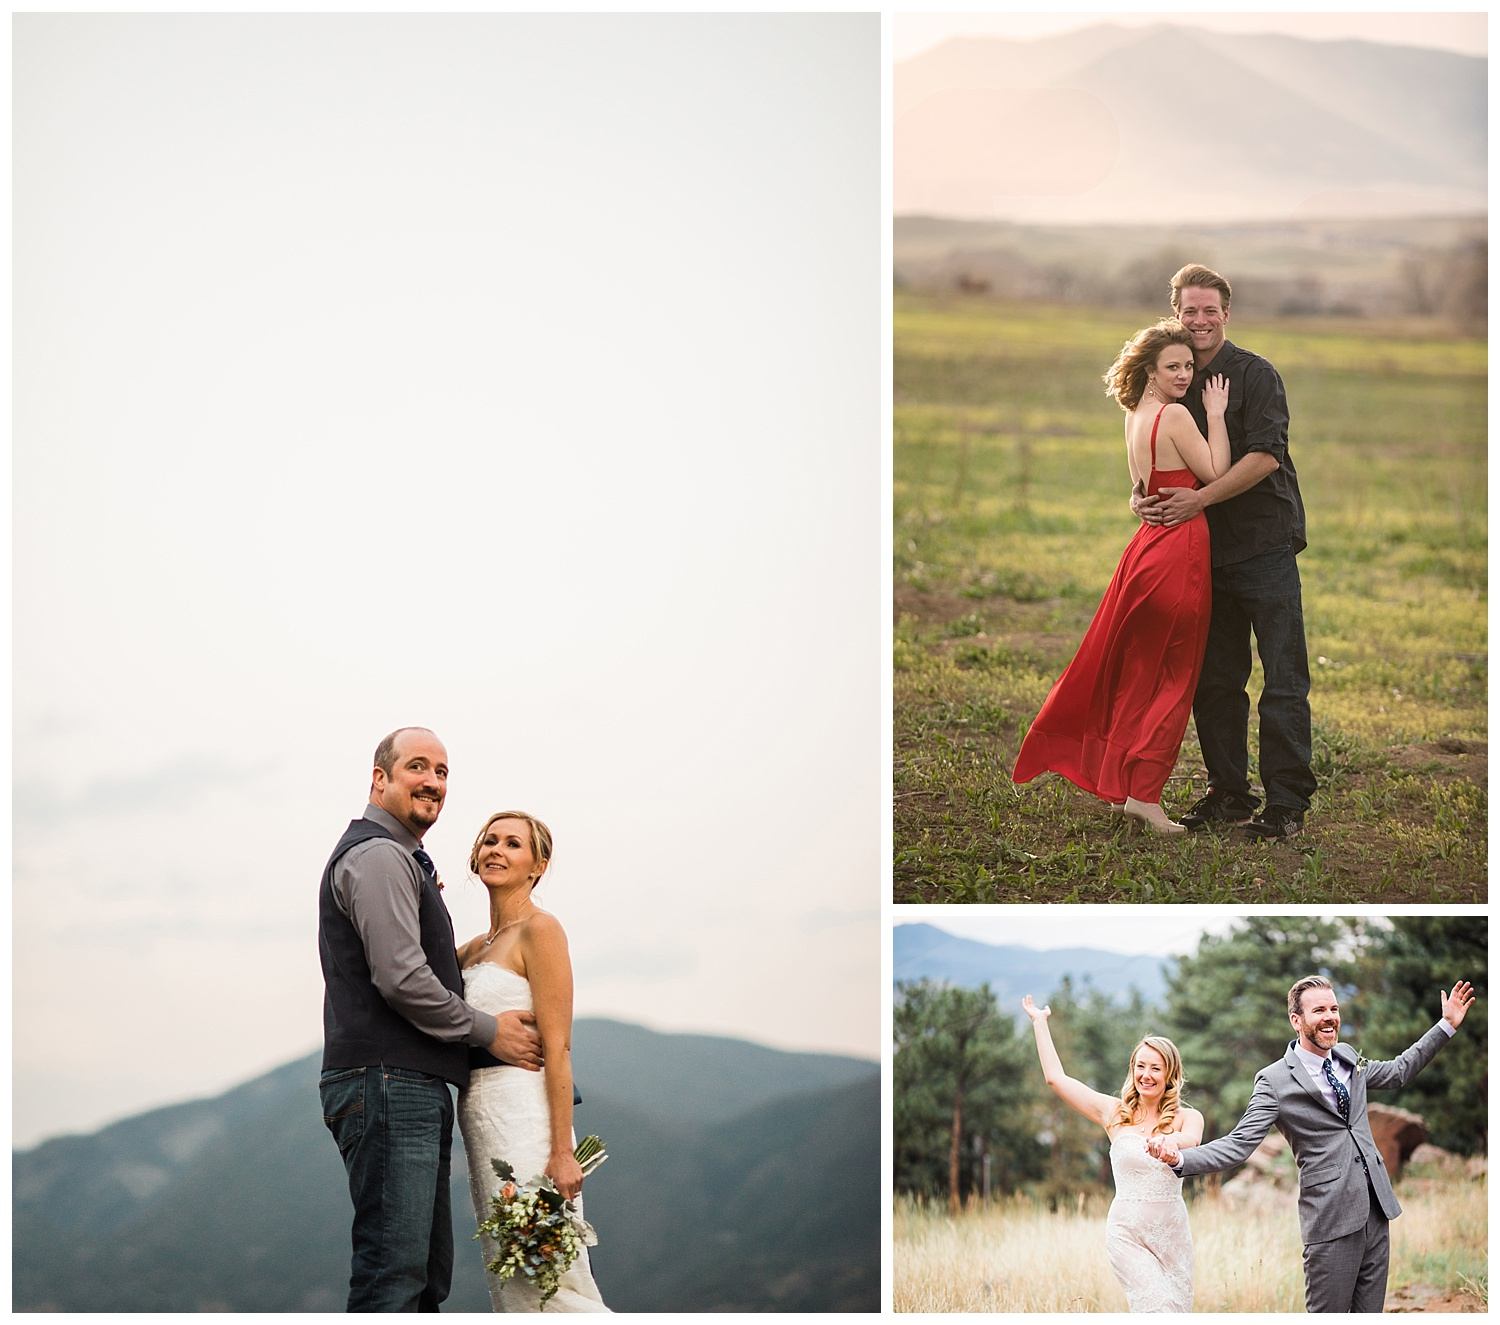 Mountain_Elopements_Apollo_Fields_Destination_Wedding_Photographers_Adventure_005.jpg